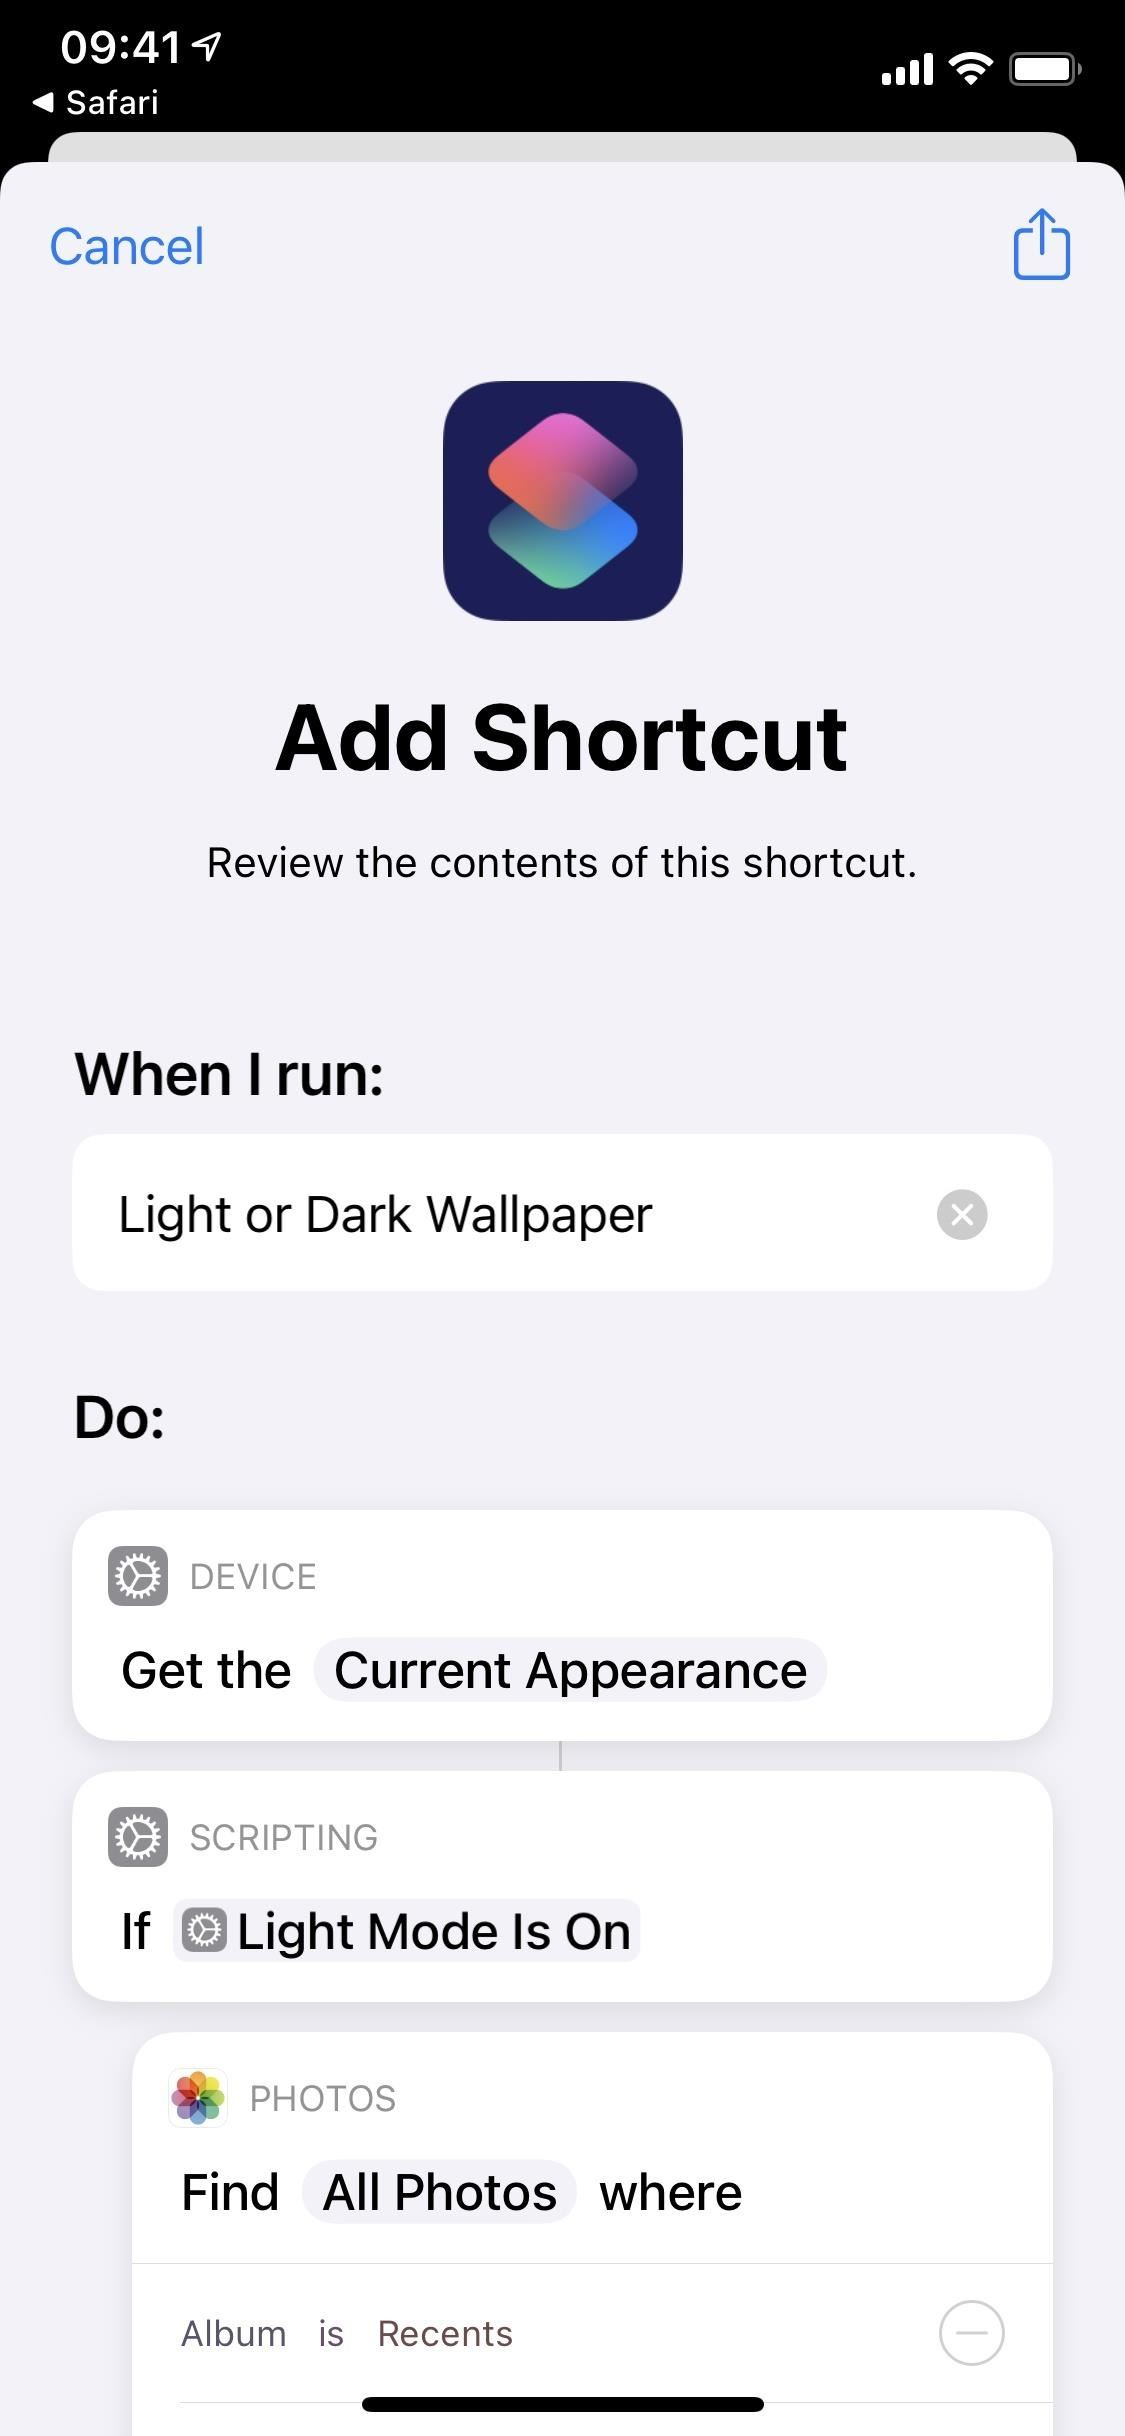 Make Your iPhone Switch Wallpapers Automatically When Dark Mode or Light Mode Is Enabled